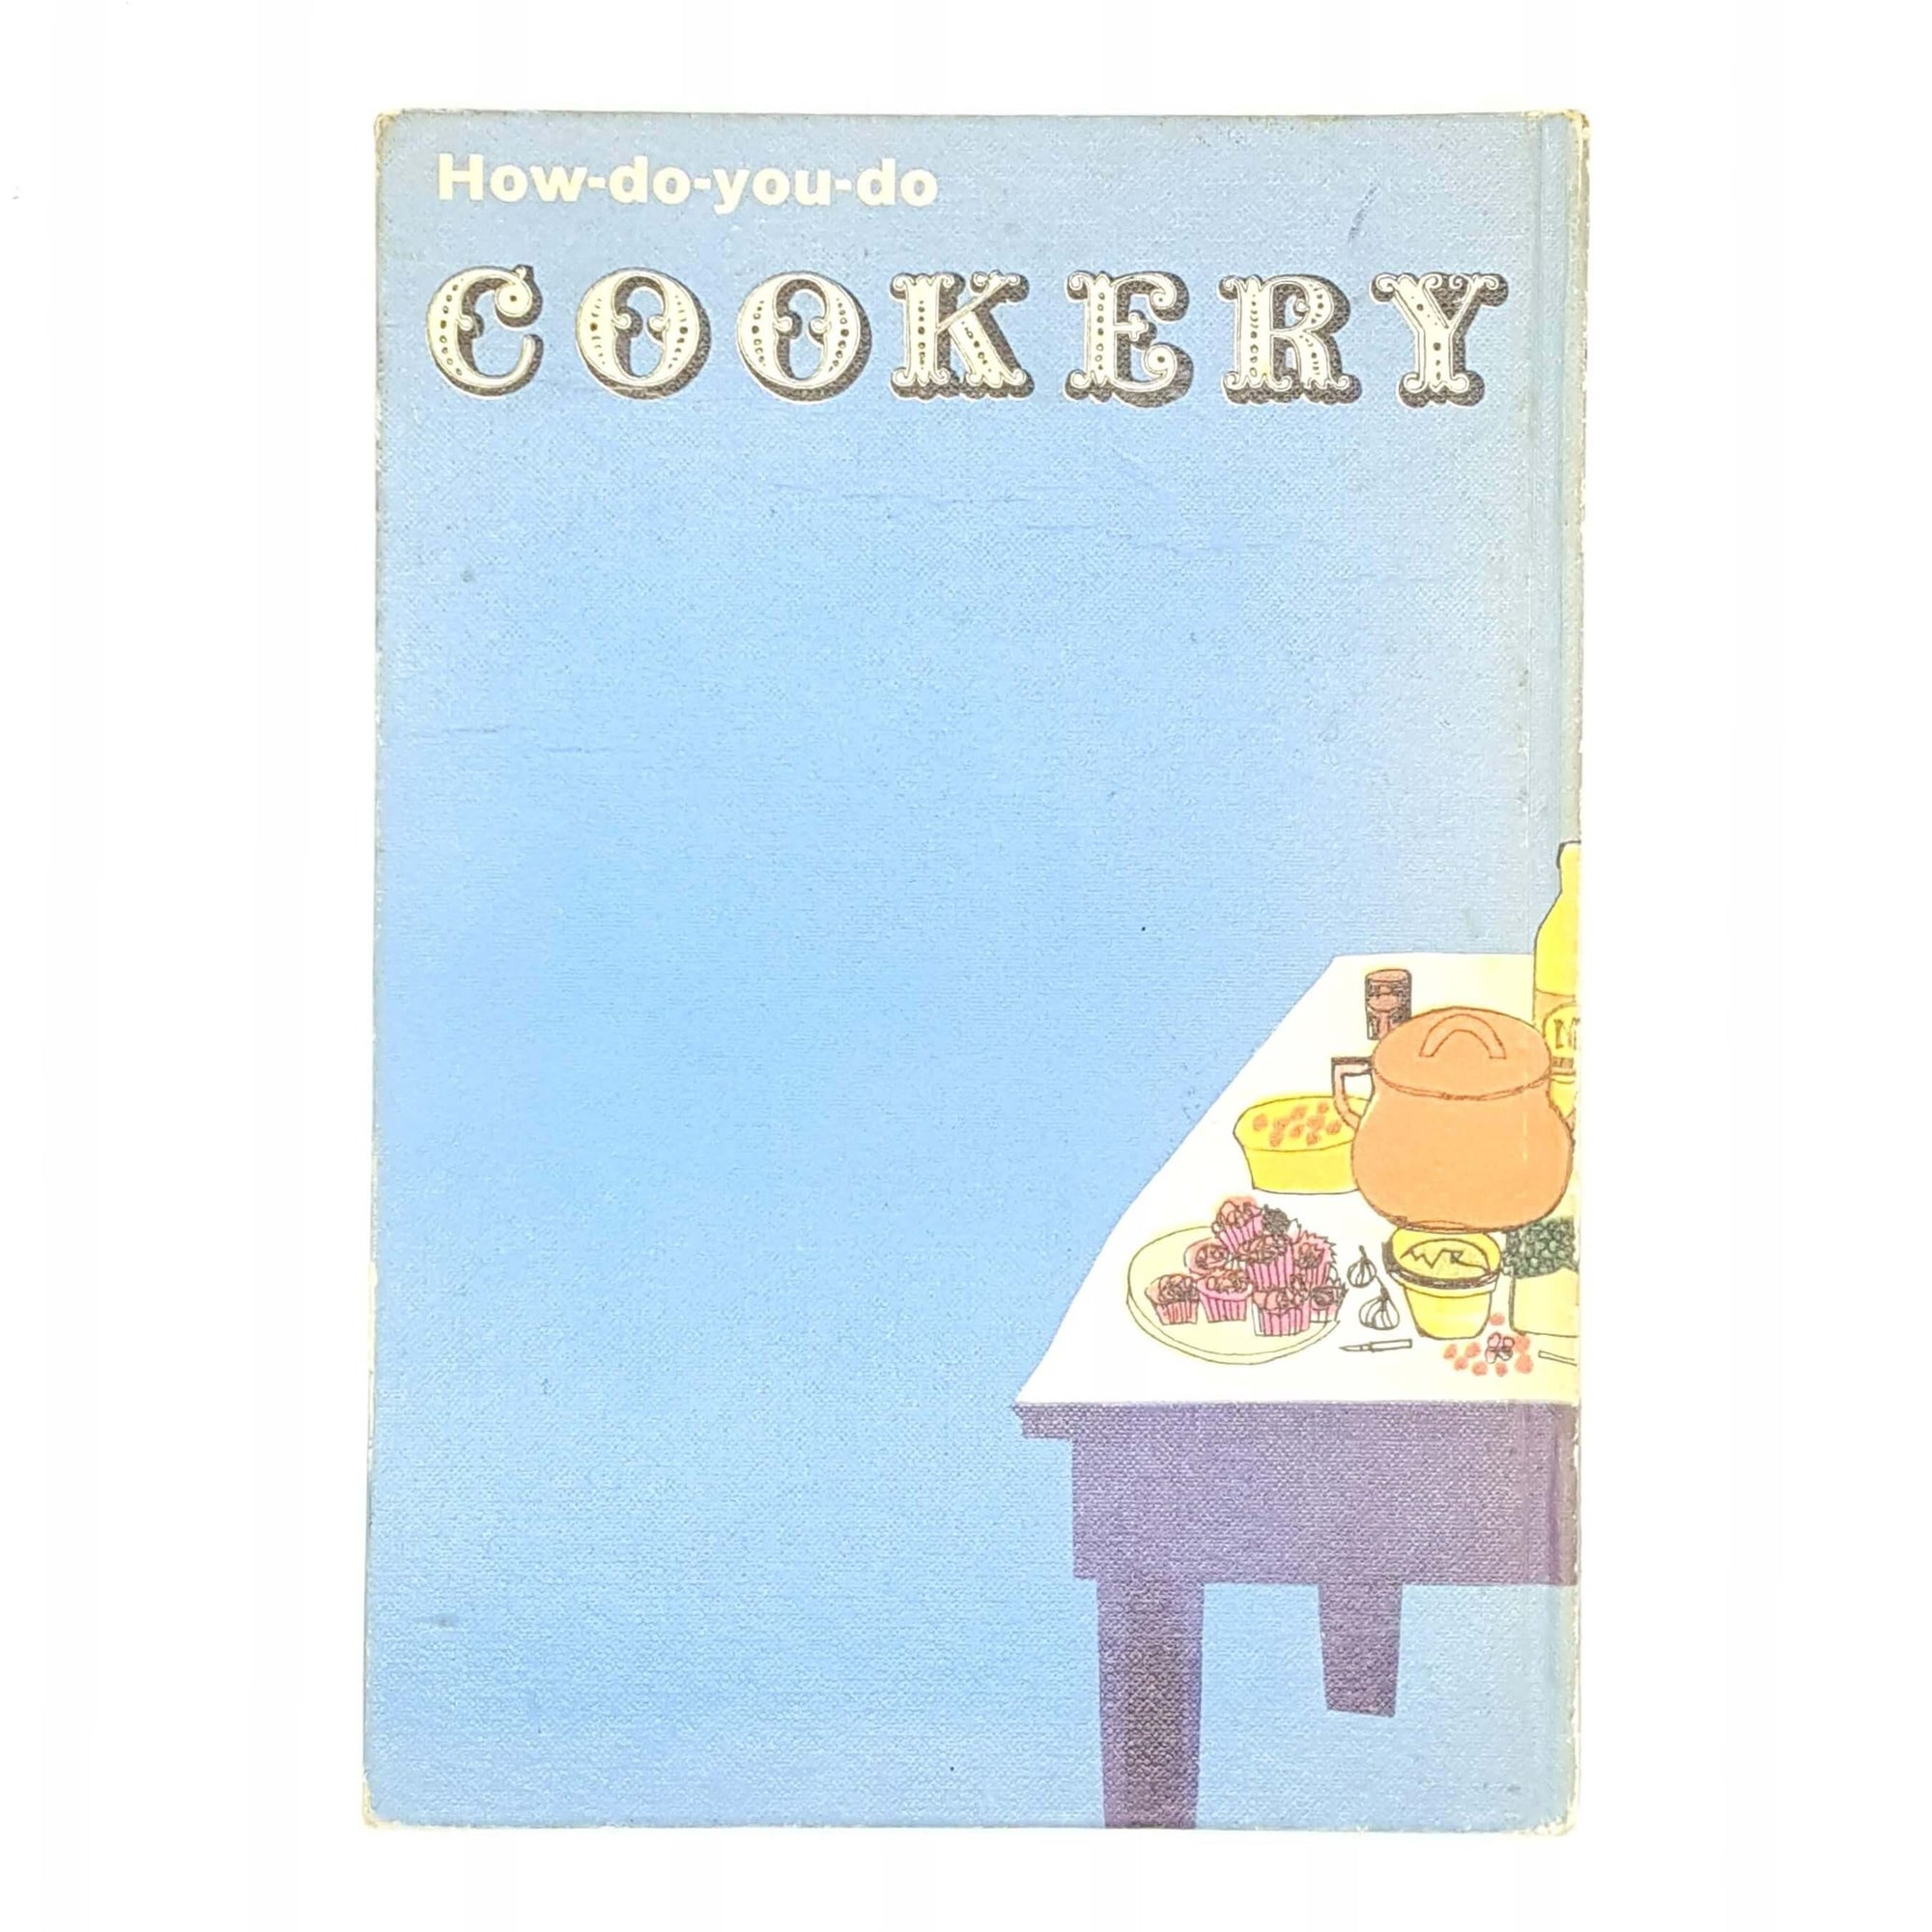 How-Do-You-Do Cookery - Thomas Nelson & Sons c.1965 Country House Library